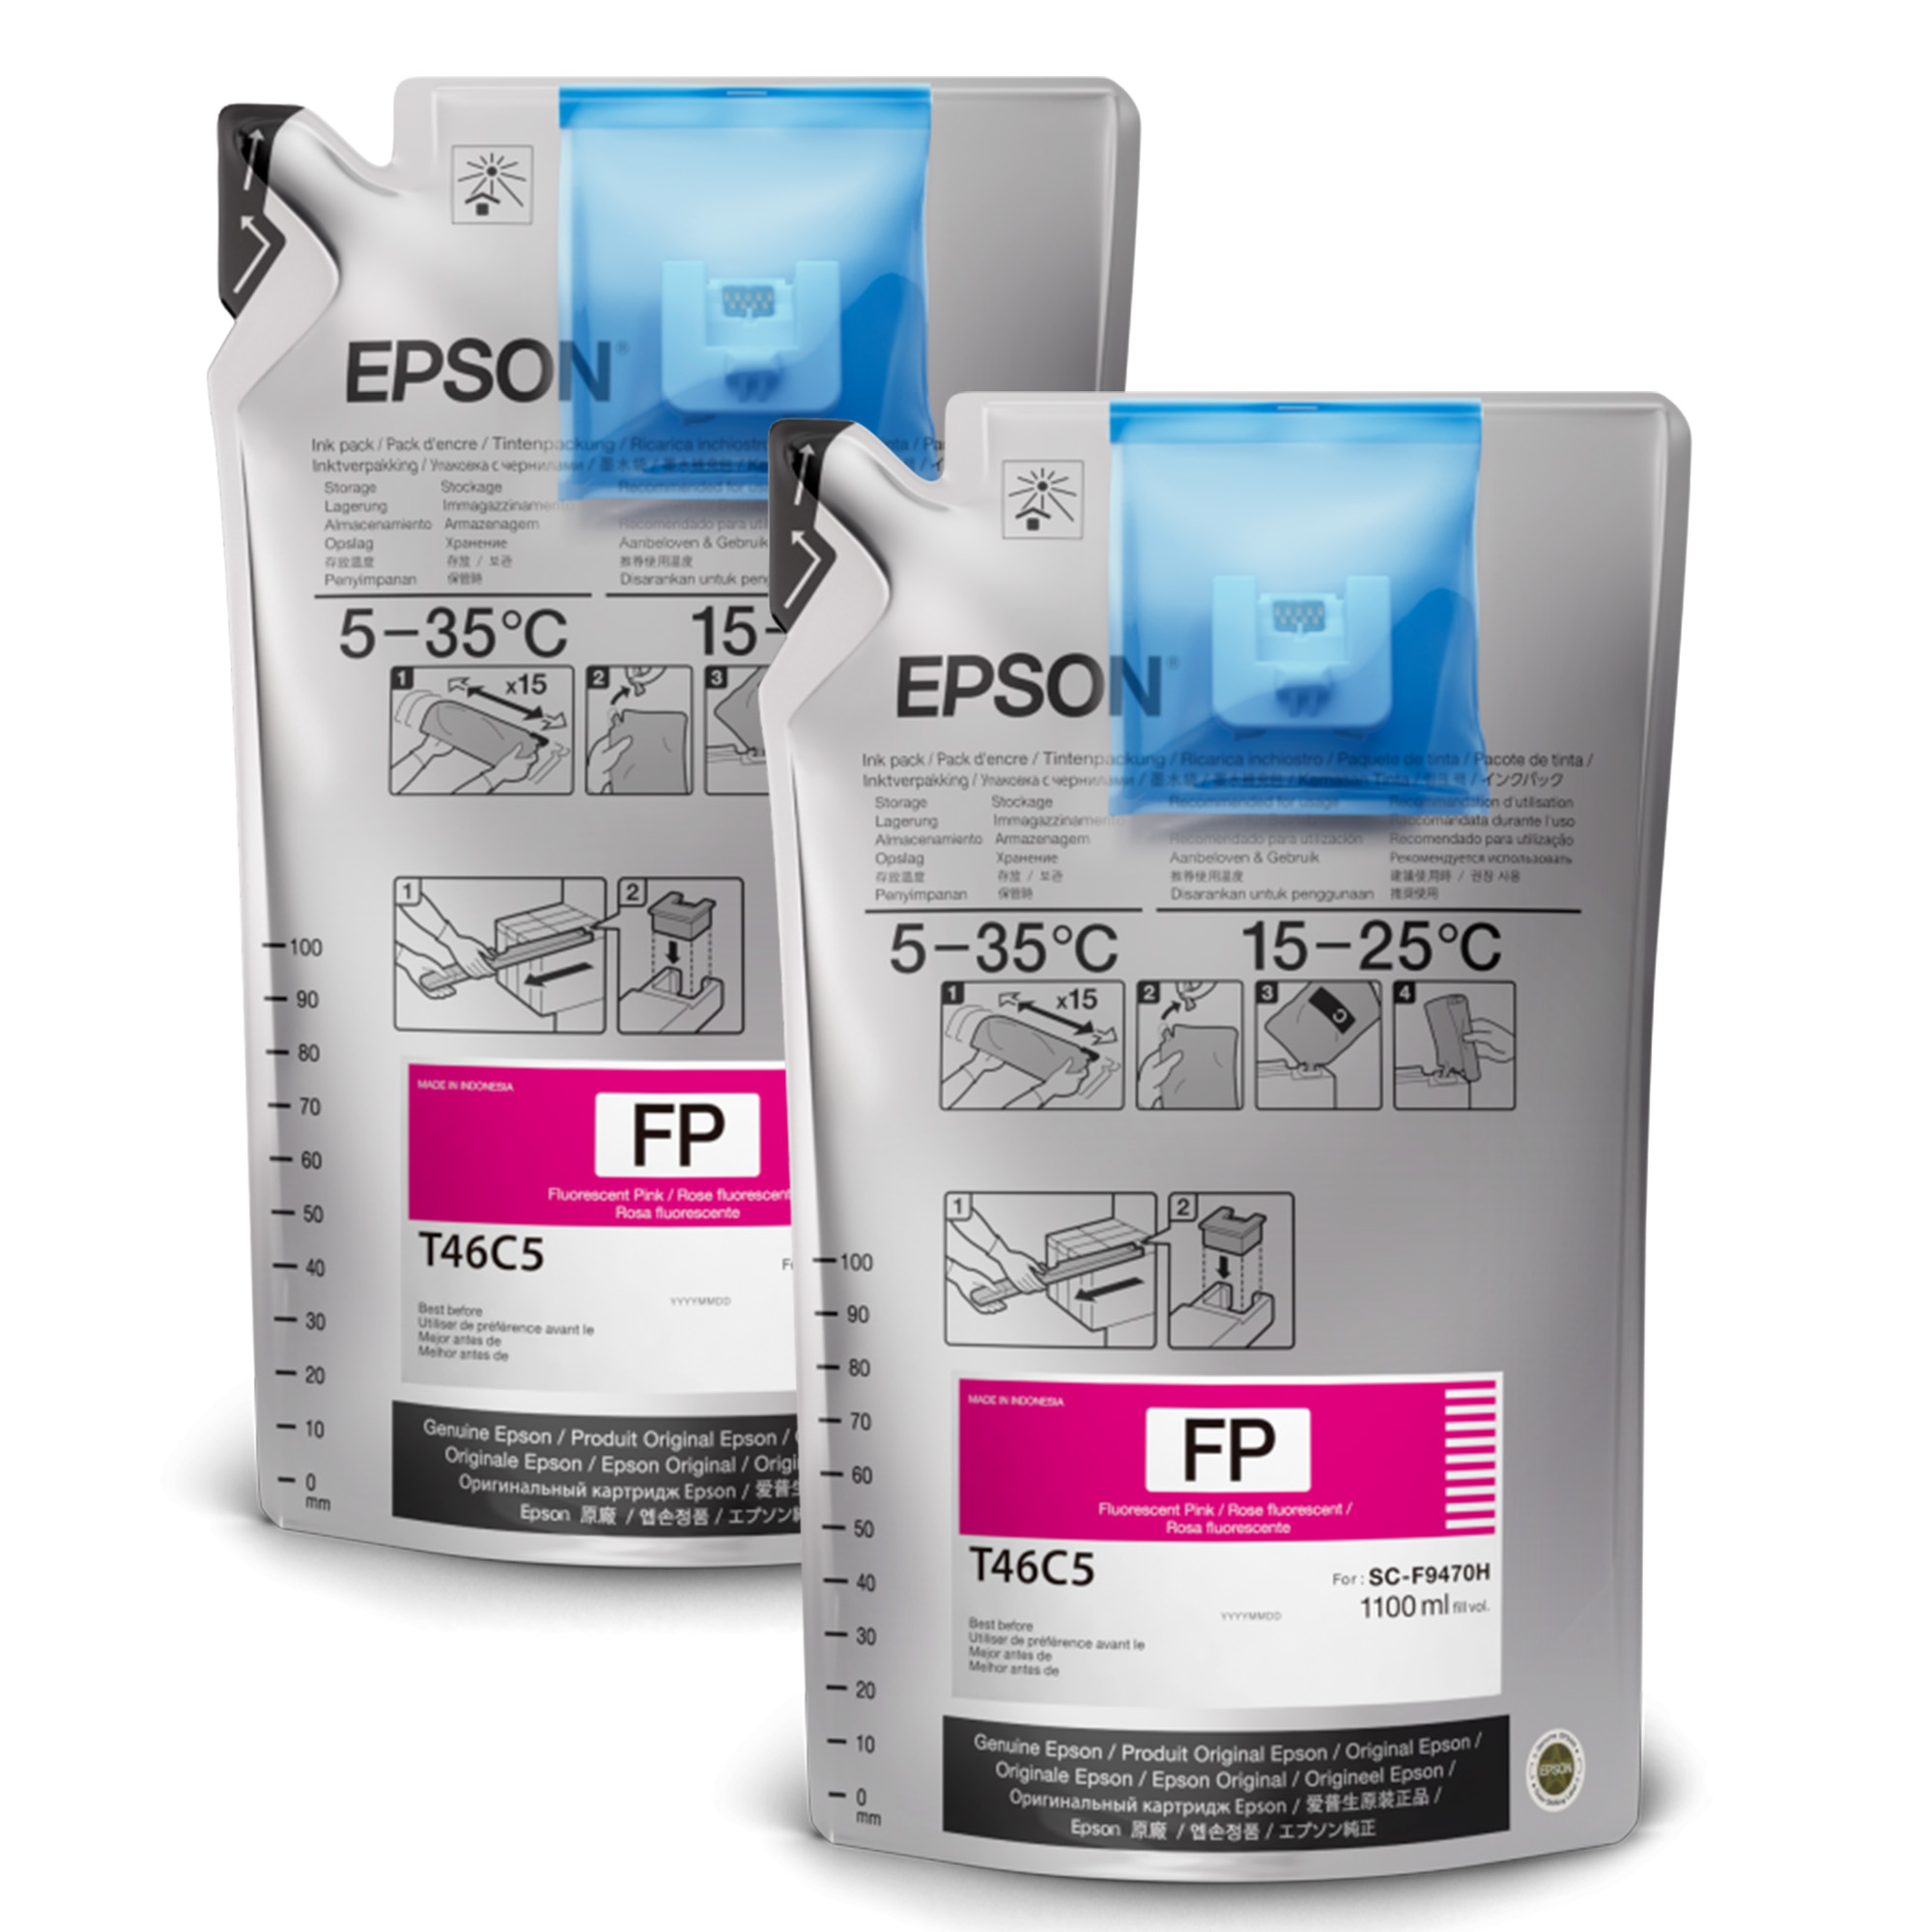 Epson® Dye-Sublimation Ink for F9470 Printers - Fluorescent Pink - 1000mL - 2 Pack